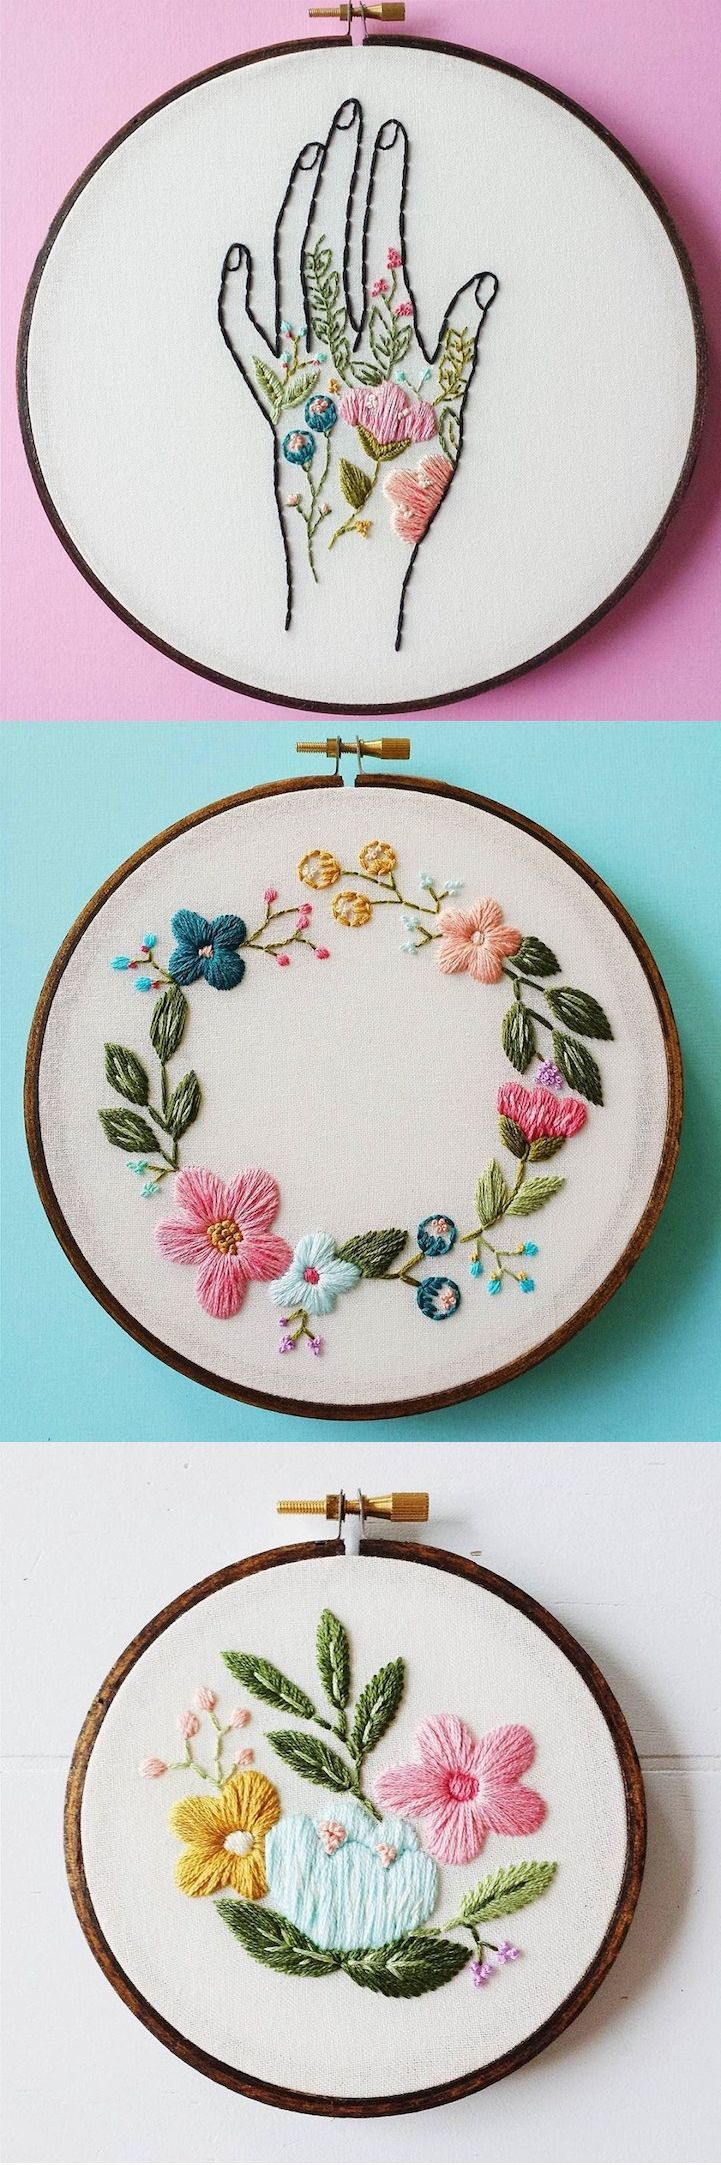 A brilliant combination of flowers and thread by Cinder & Honey. #etsy #embroidery More